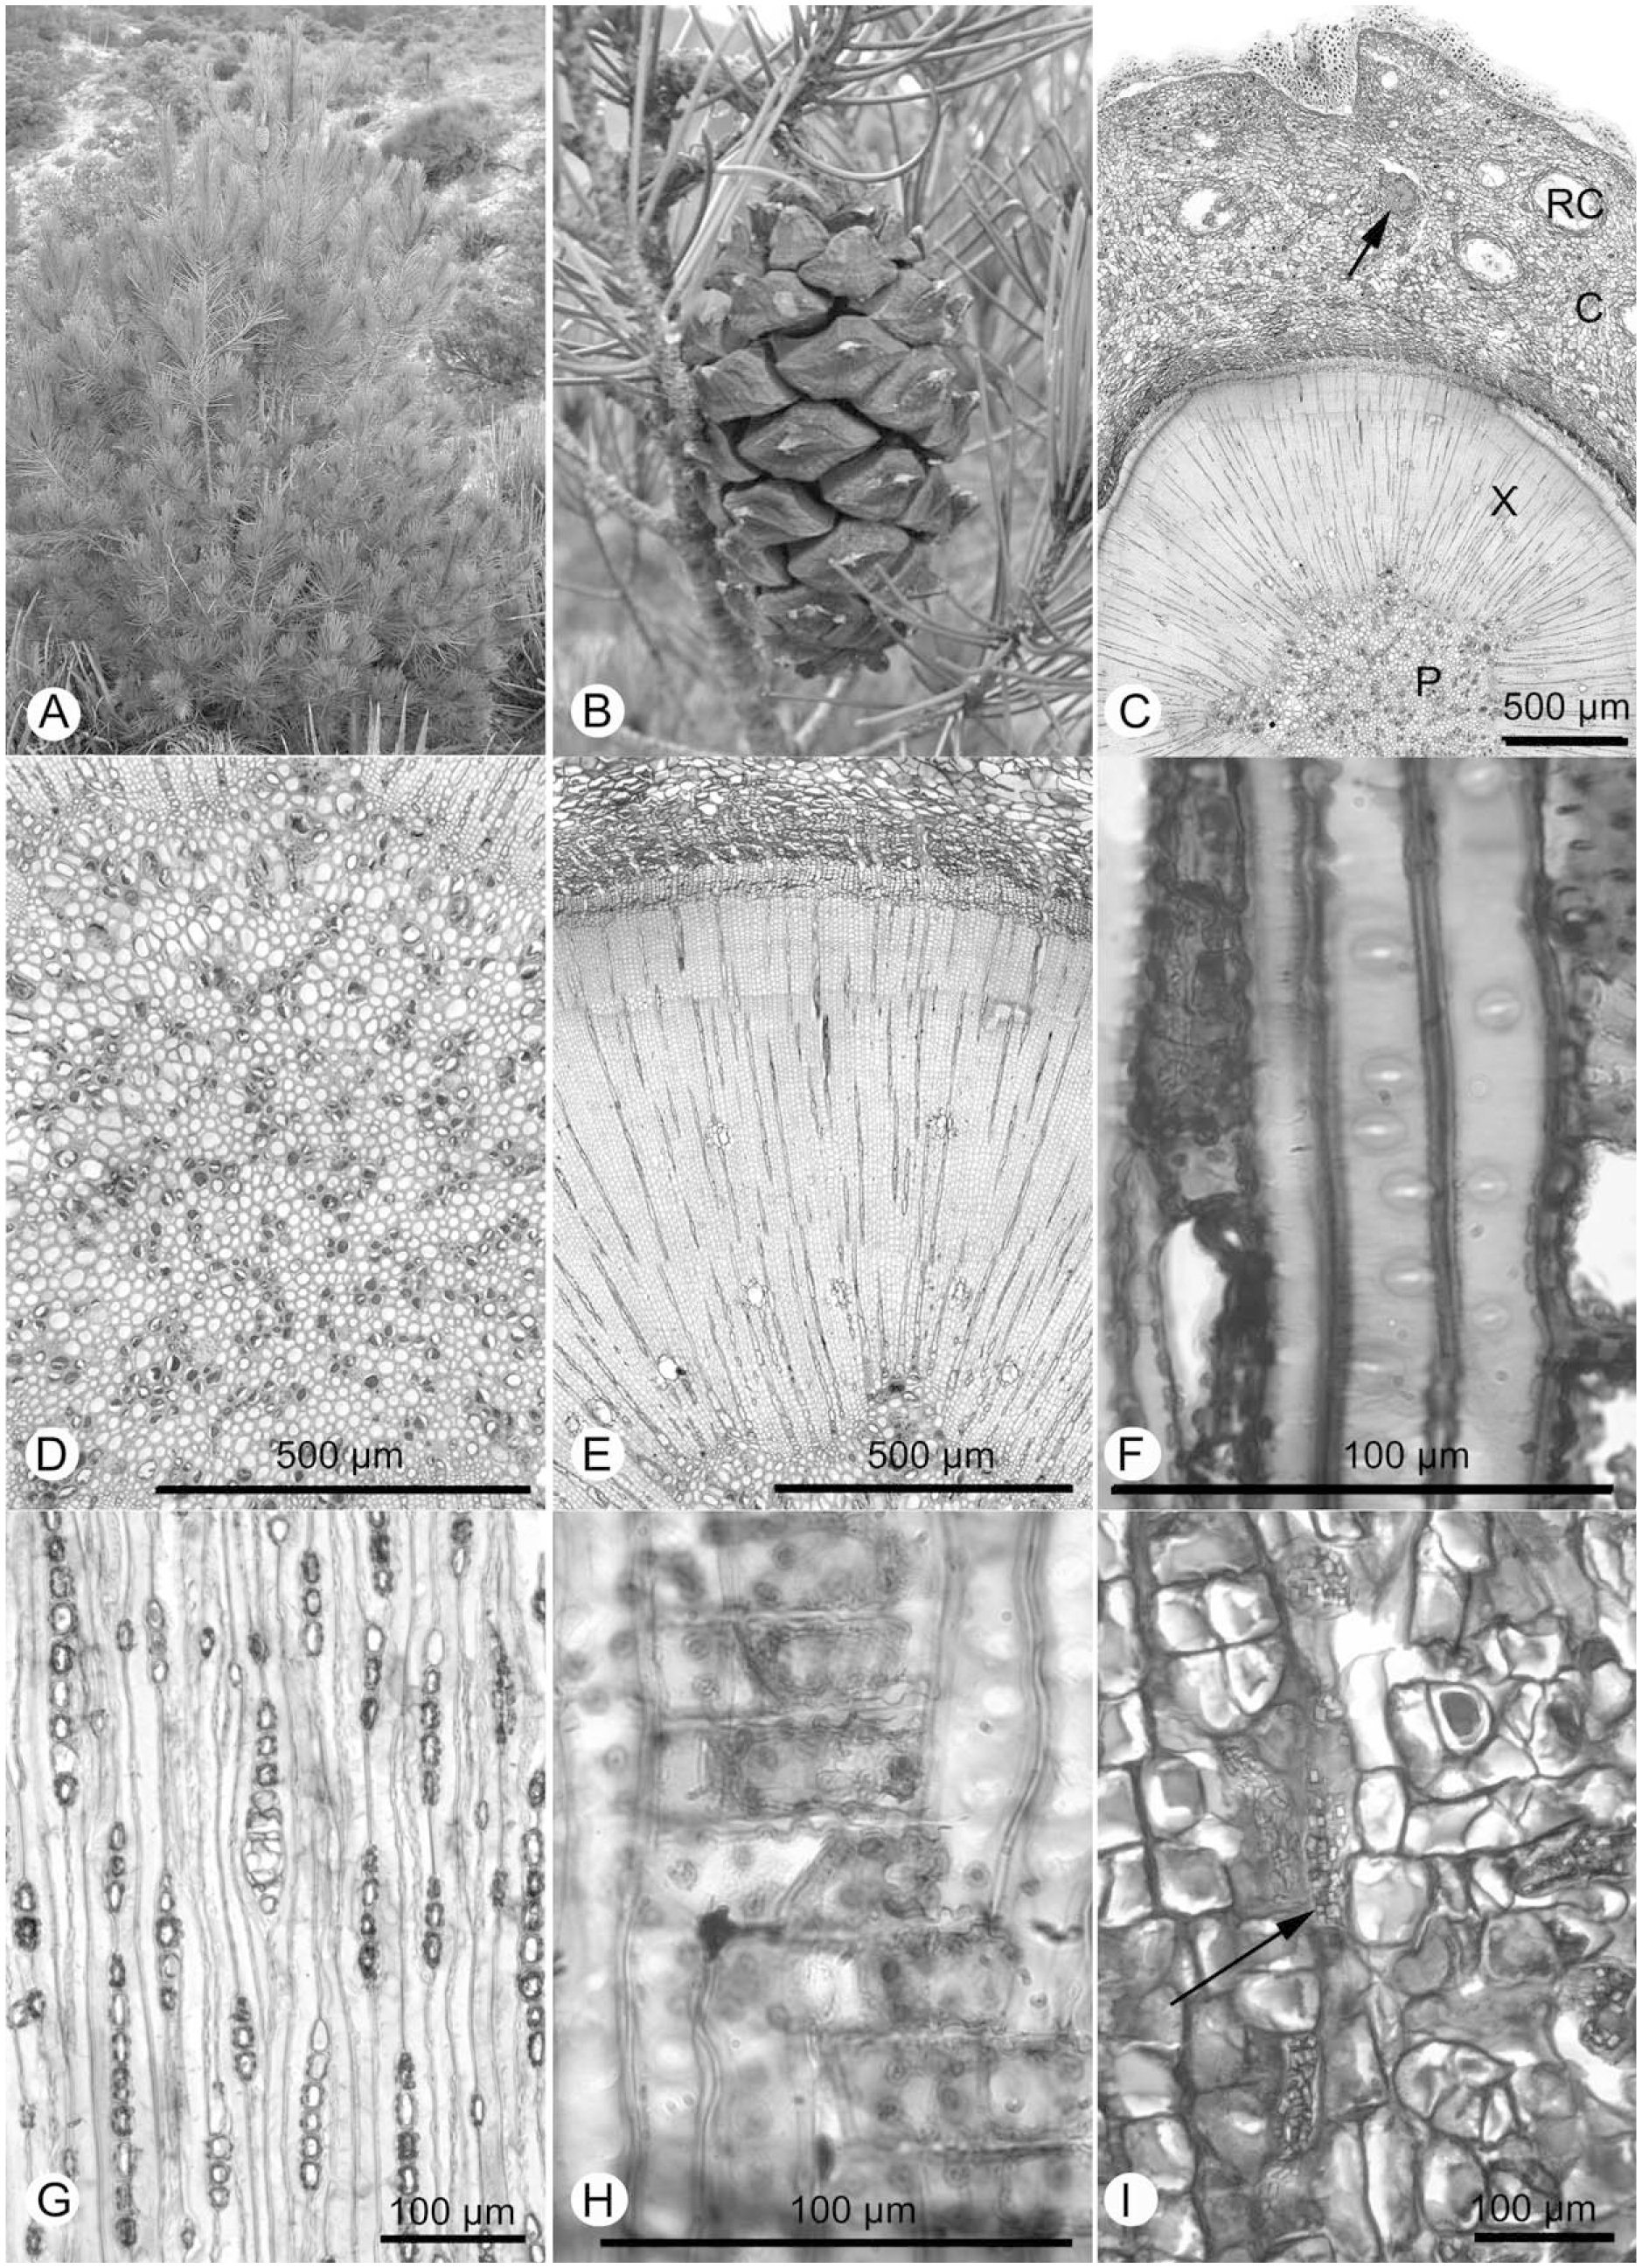 Pinus nelsonii and a Cladistic Analysis of Pinaceae Ovulate Cone